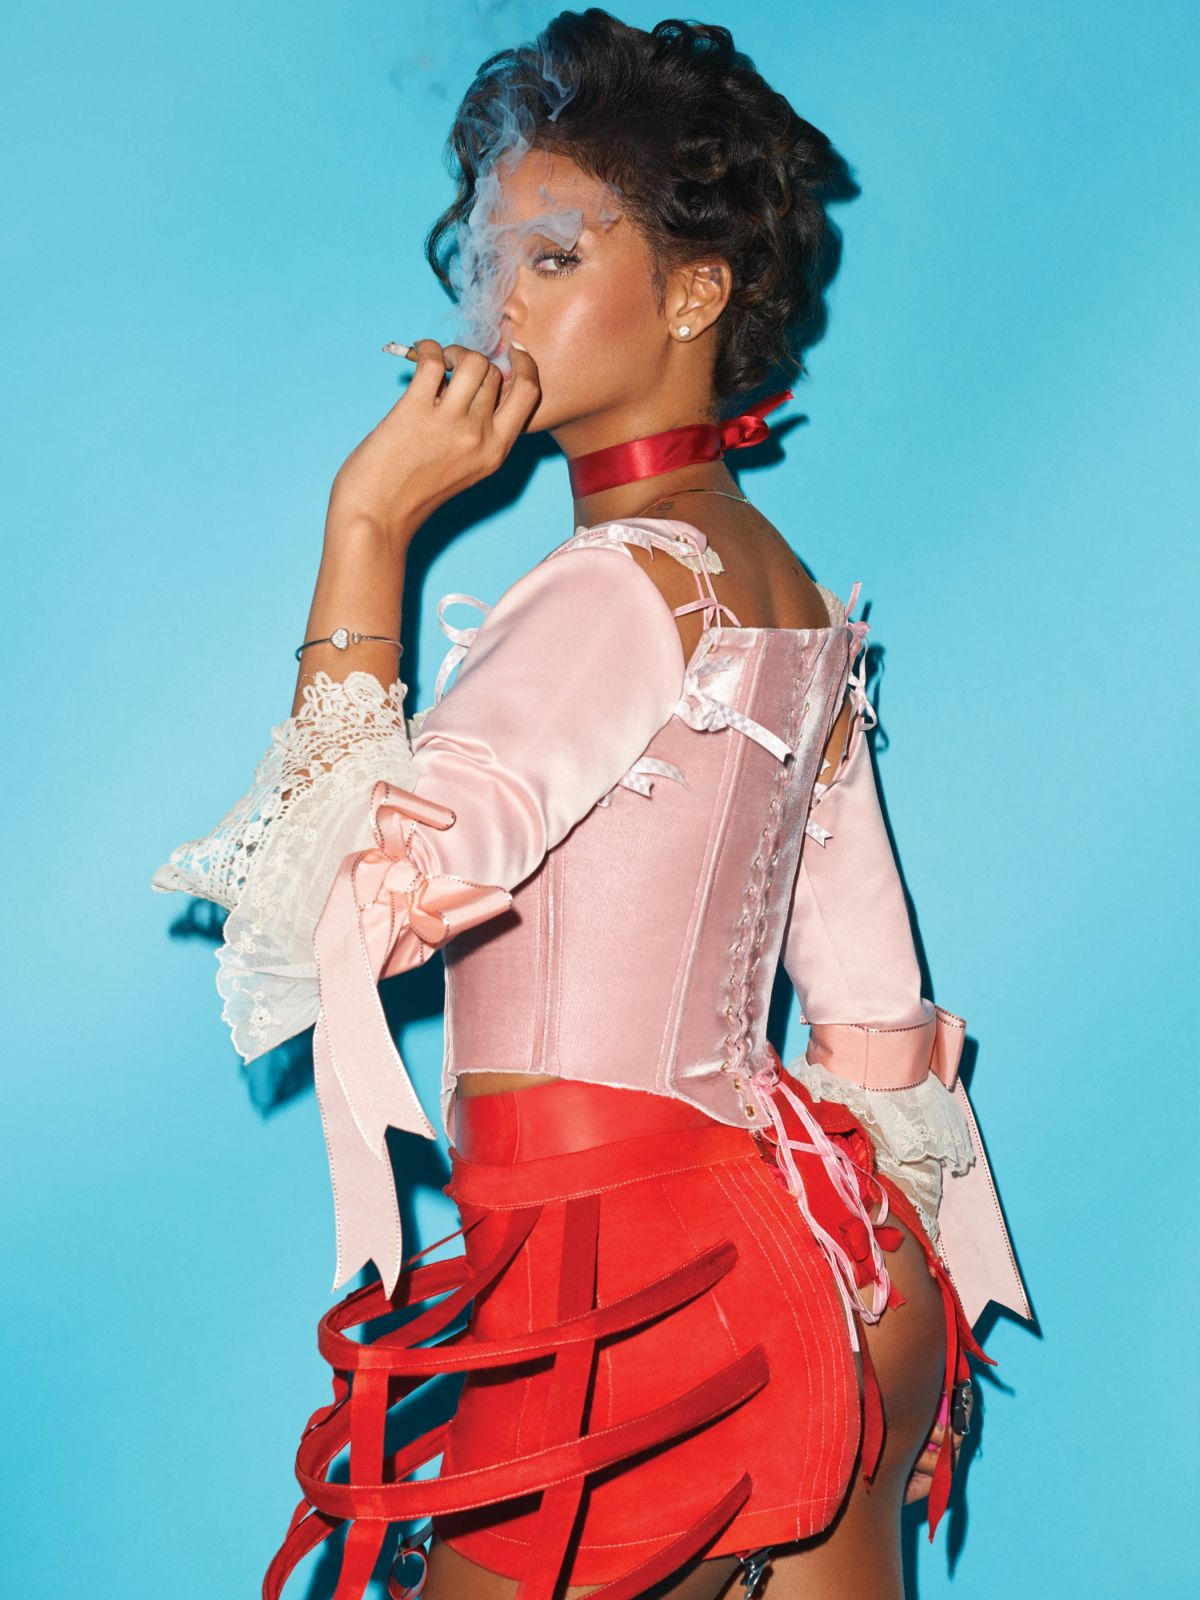 RIHANNA by Terry Richardson for CR Fashion Book, Fall/Winter 2016